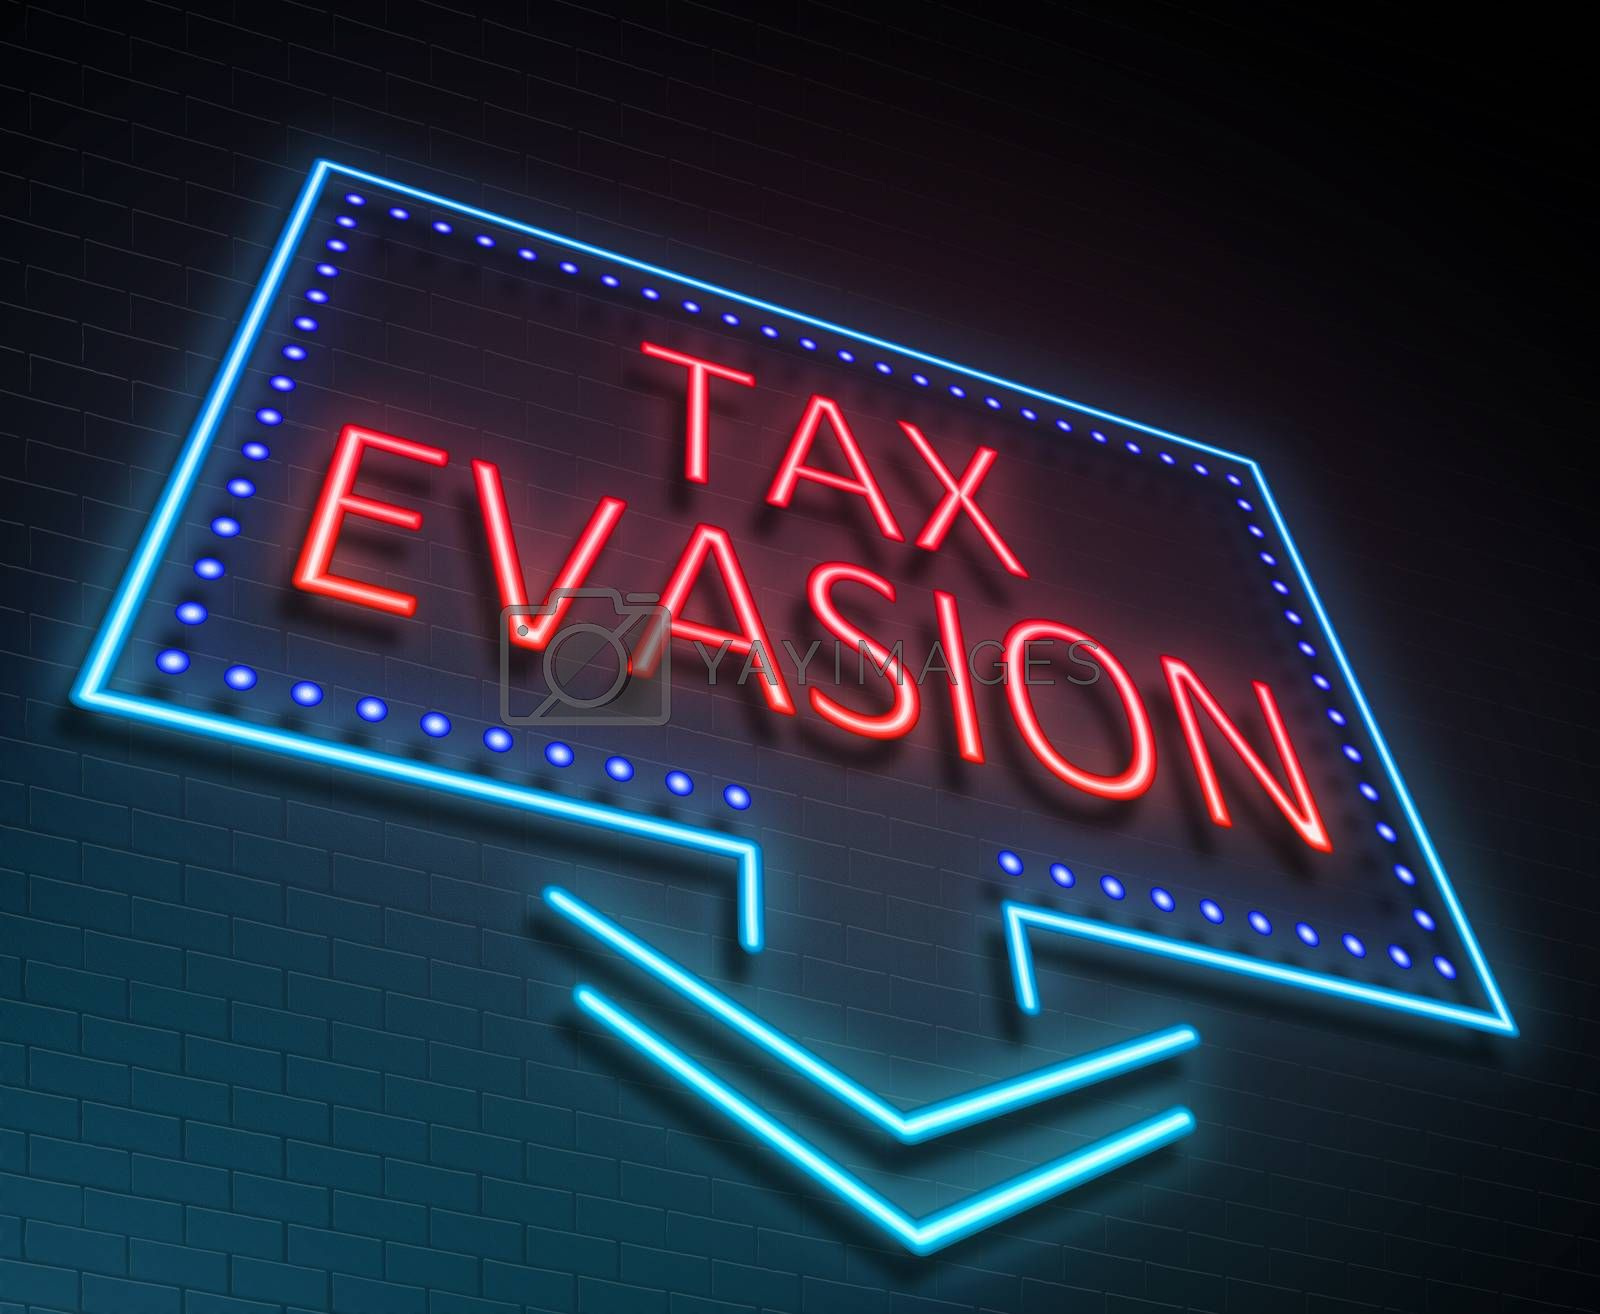 Illustration depicting an illuminated neon sign with a tax evasion concept.